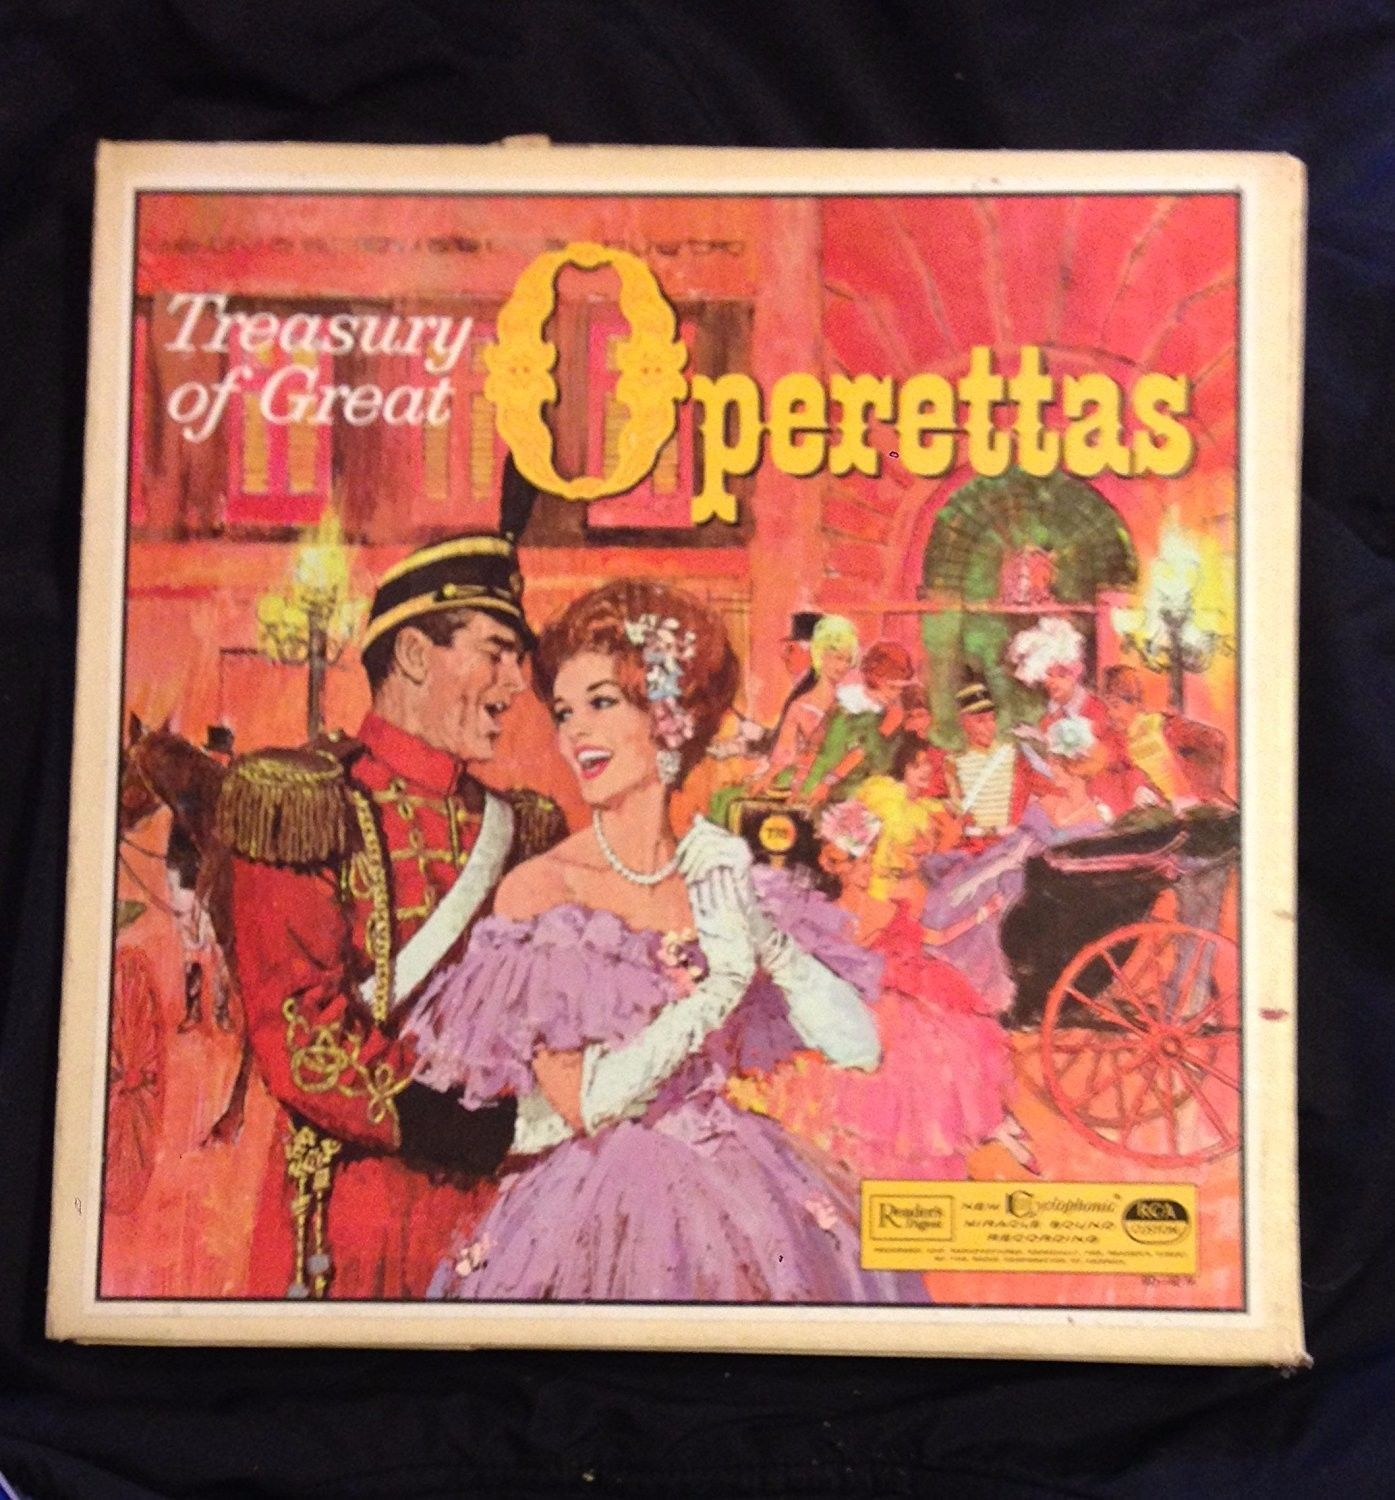 Treasury of great Operettas, vinyl records by RCA